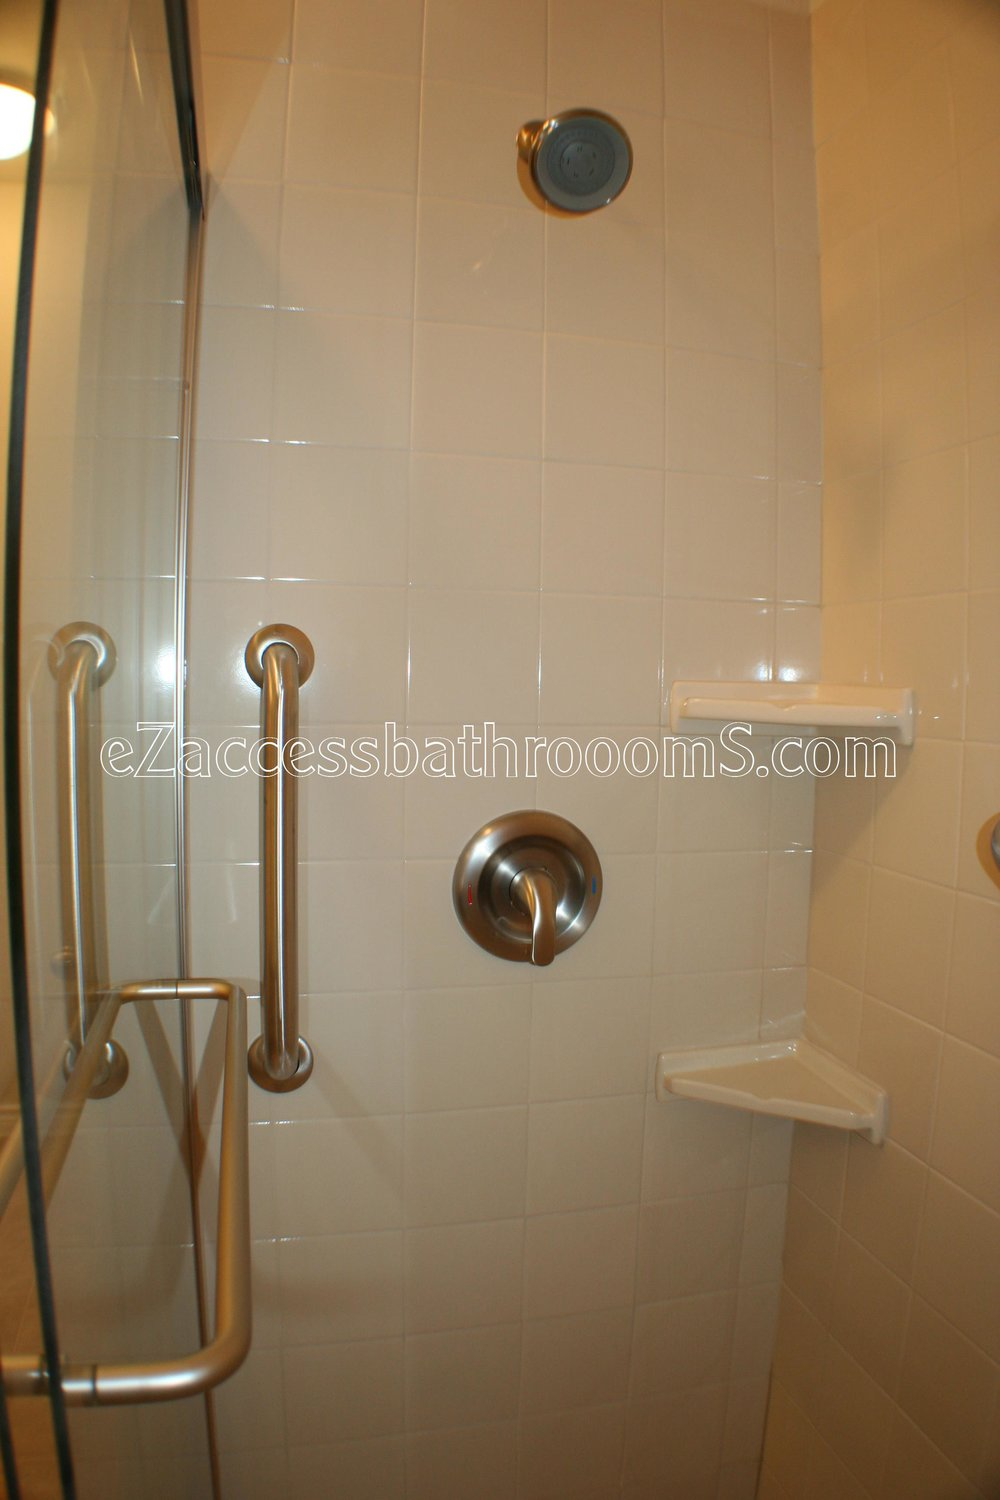 TUBTOSHOWERS CONVERSIONS EZACCESSBATHROOMS.COM 832202843 BRYANT 138.JPG